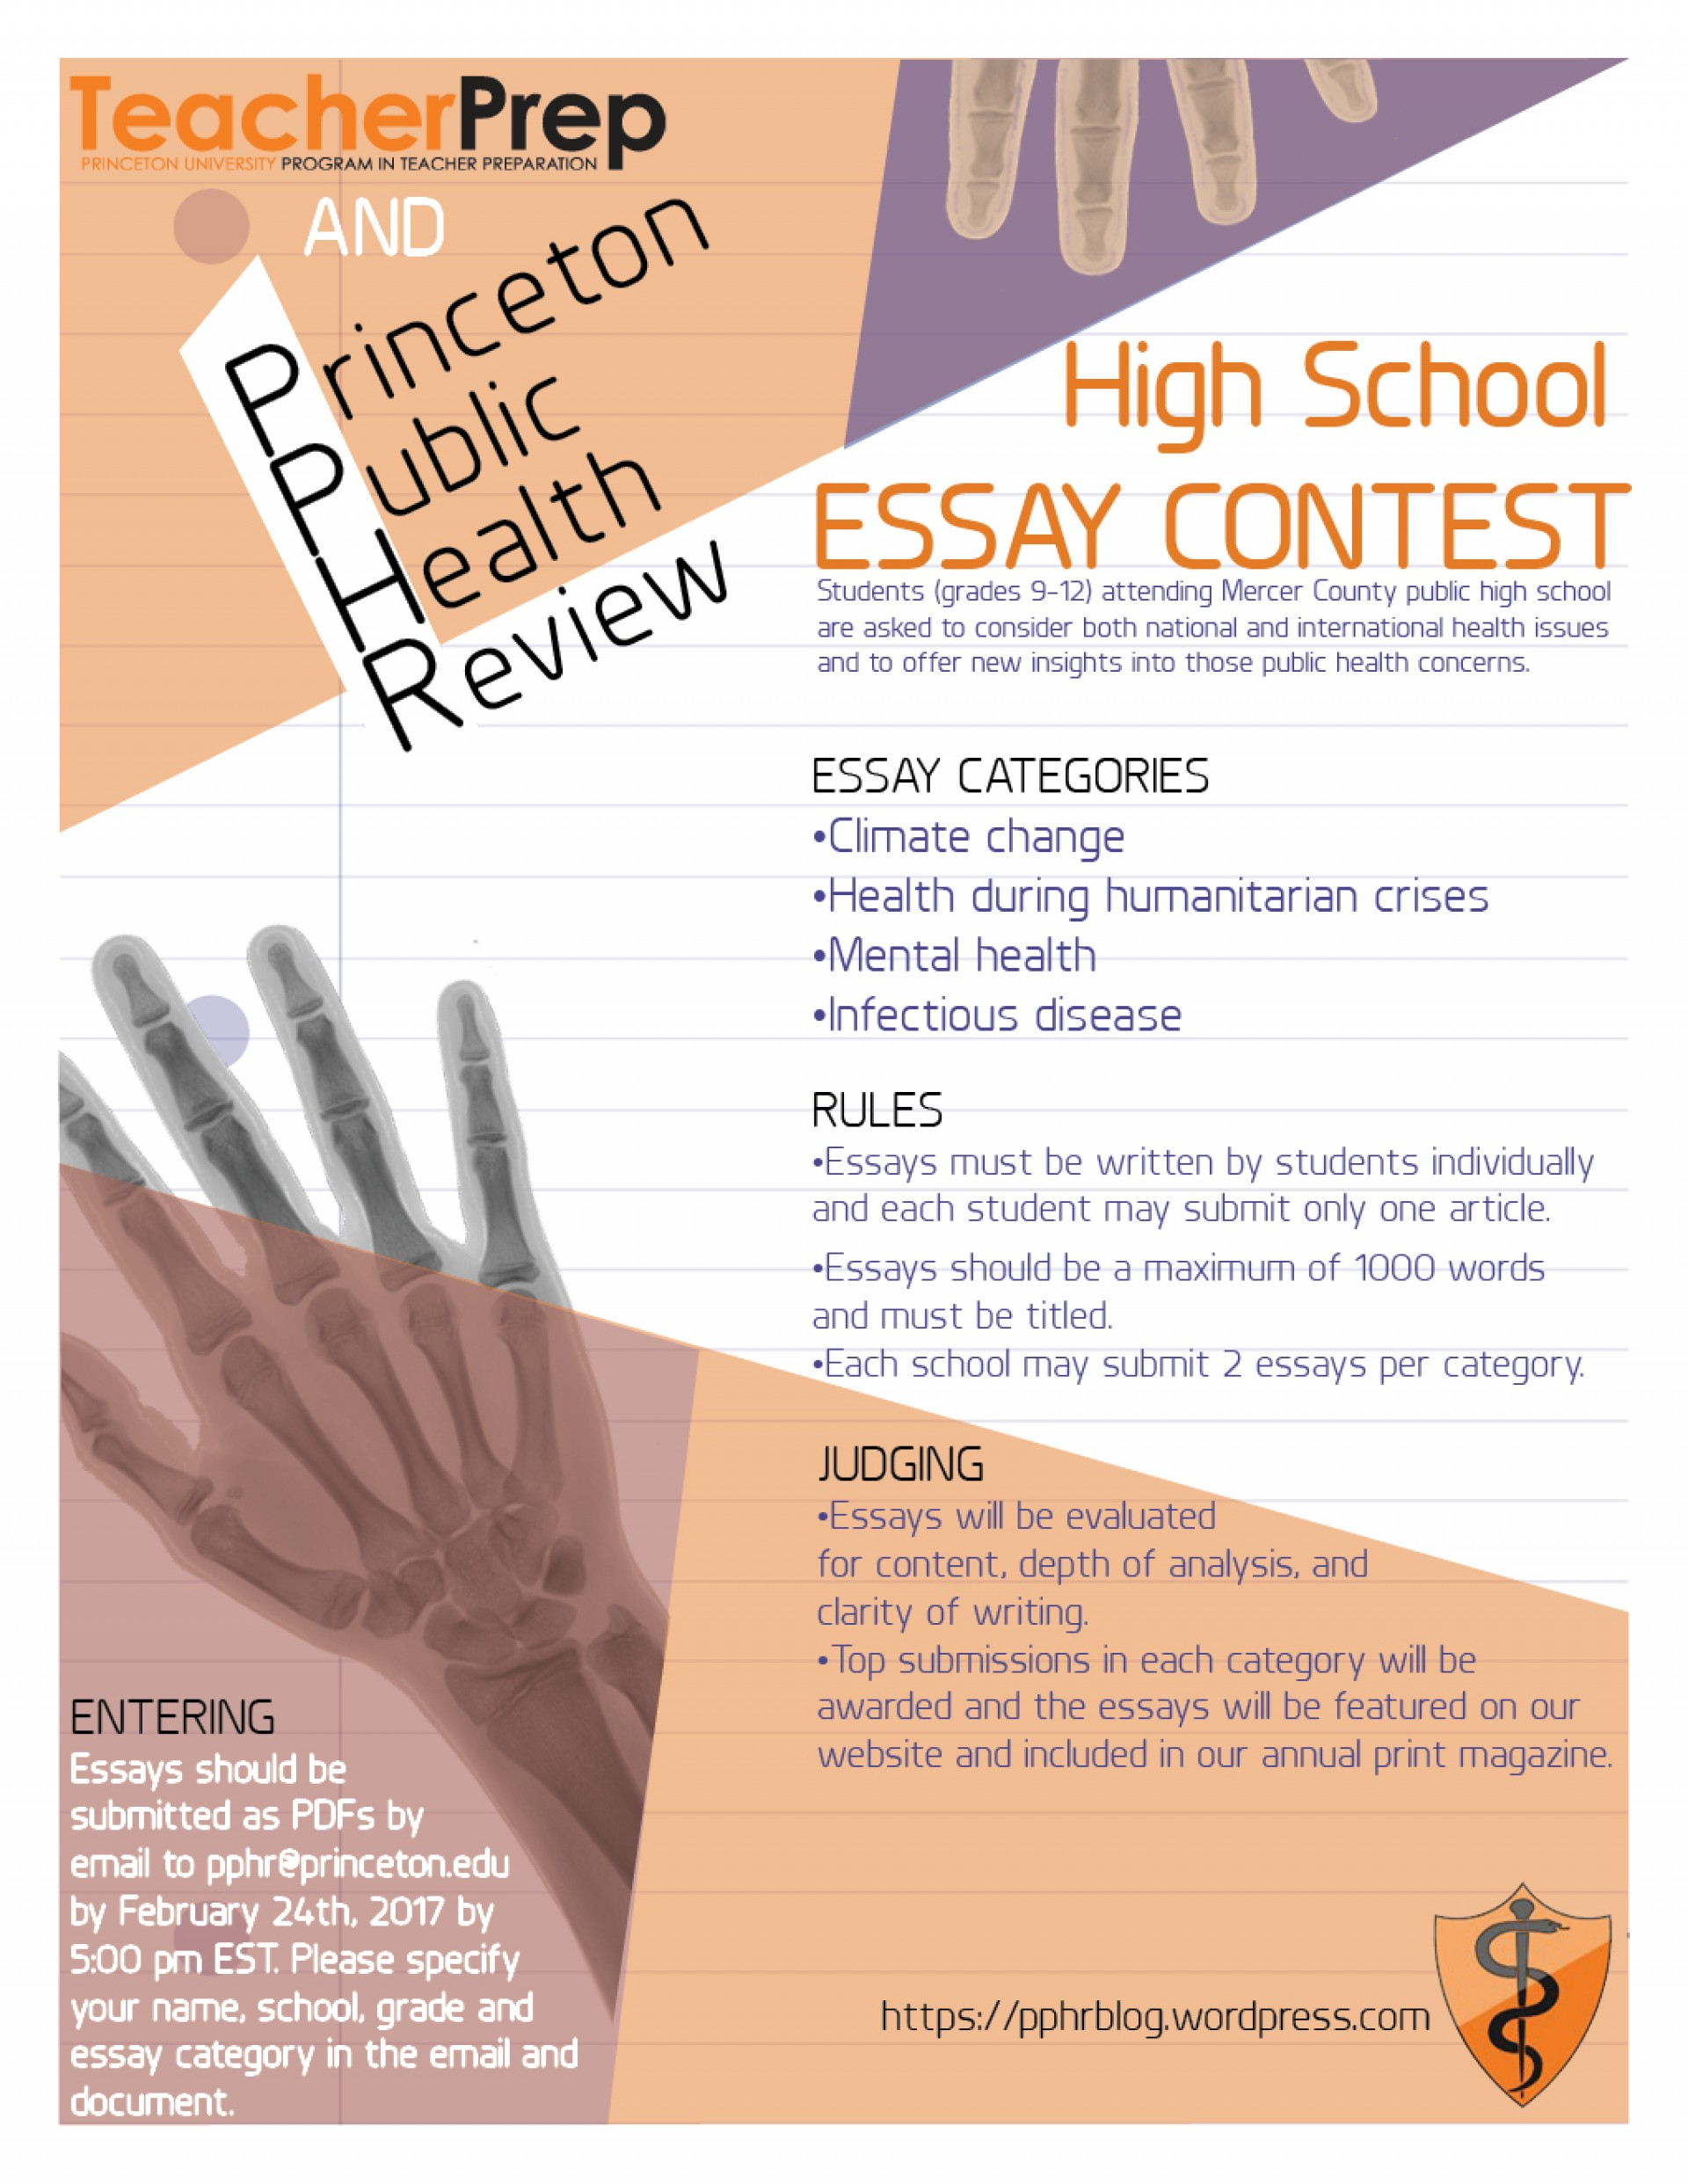 008 High School Essay Contests Pphressaycontestfeb24 Fascinating Contest Winners 2019 For Scholarships 1920